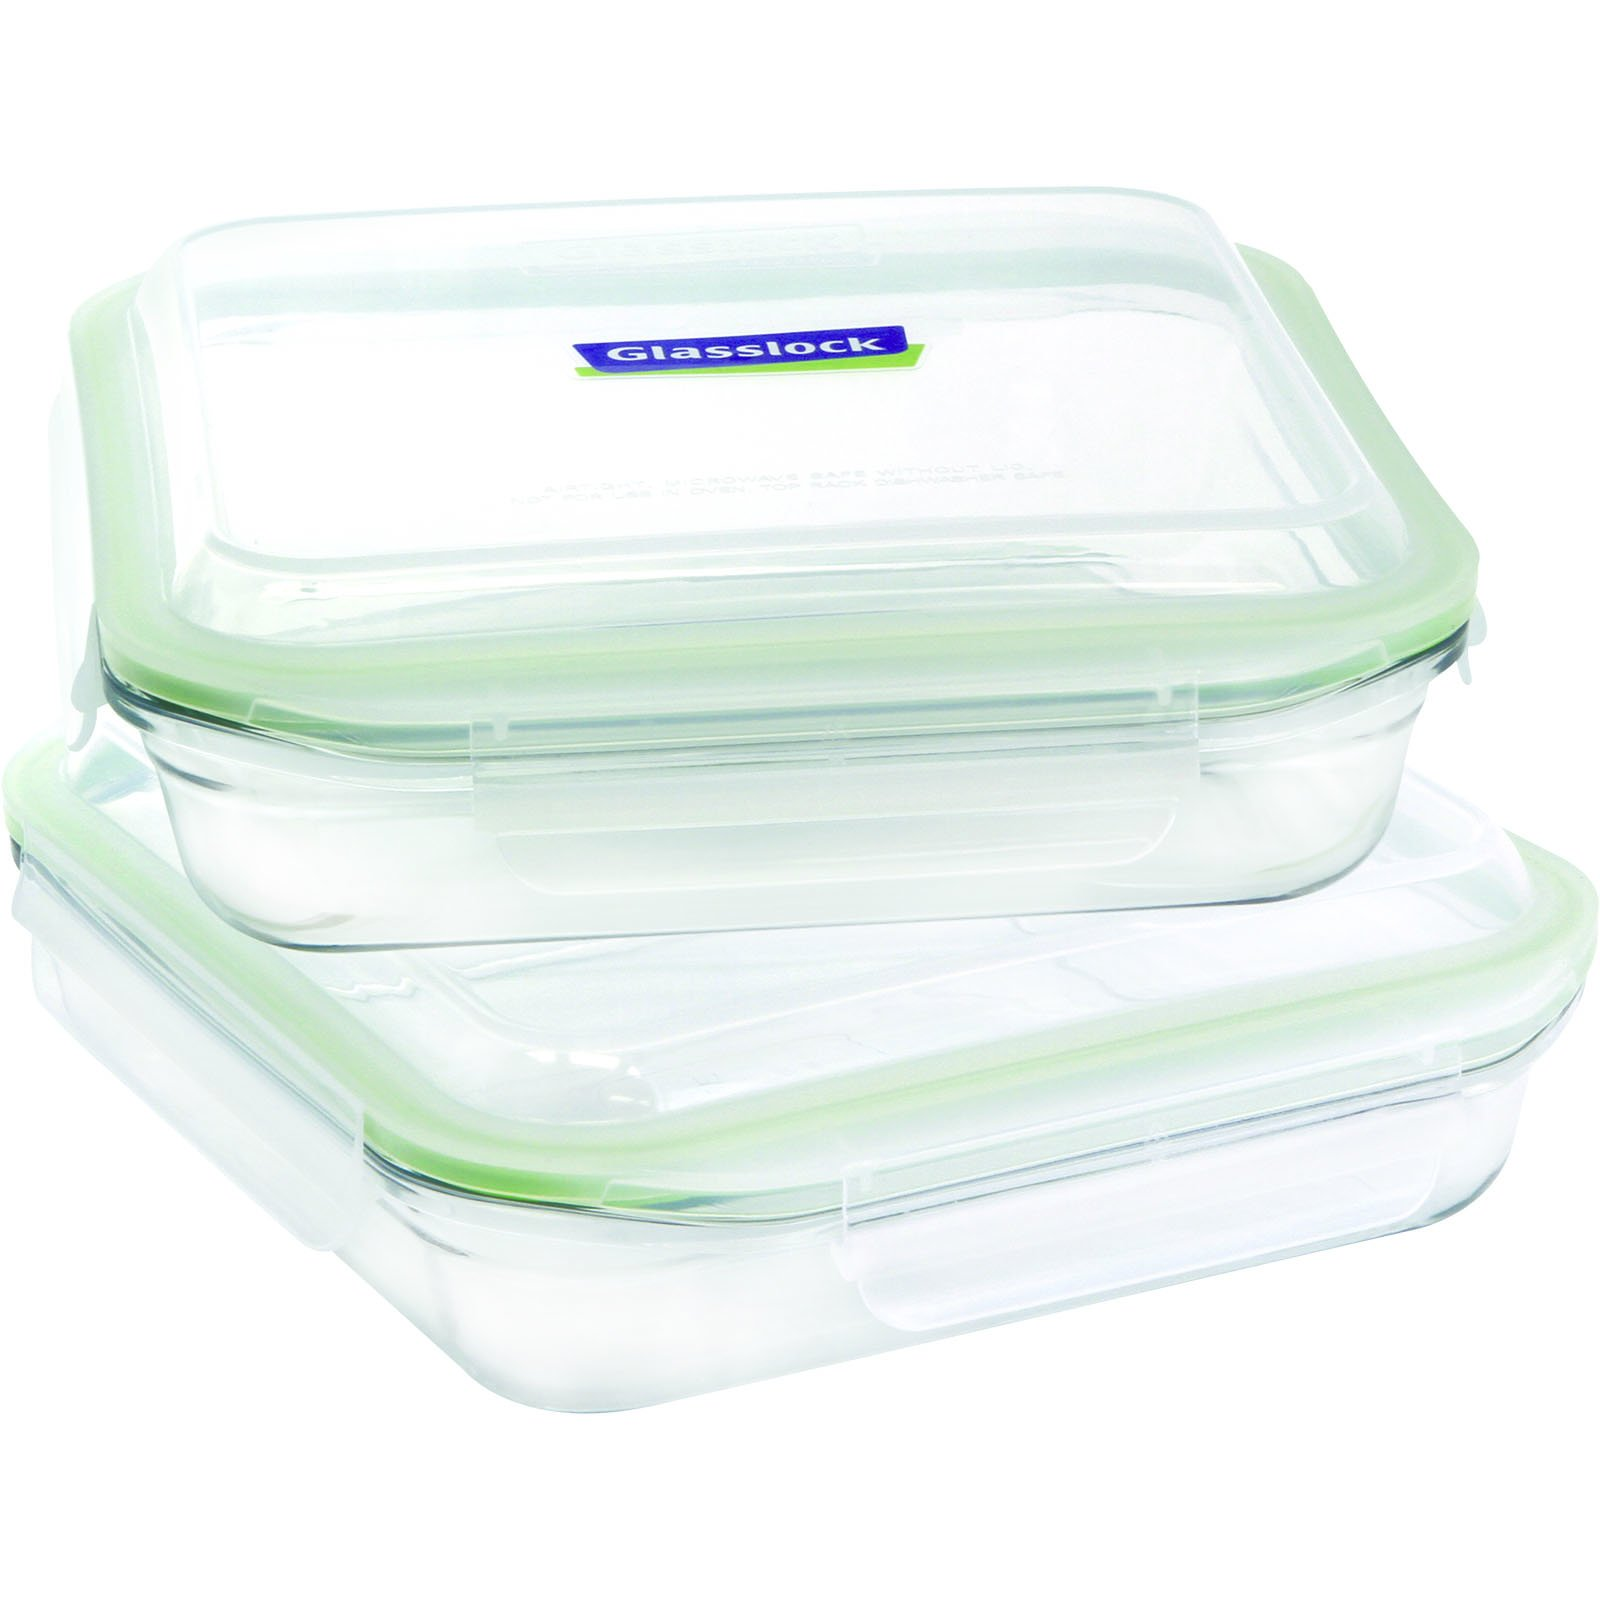 Glasslock 4-Piece Oven Safe Bakeware Square Set, 9 by 9-Inch